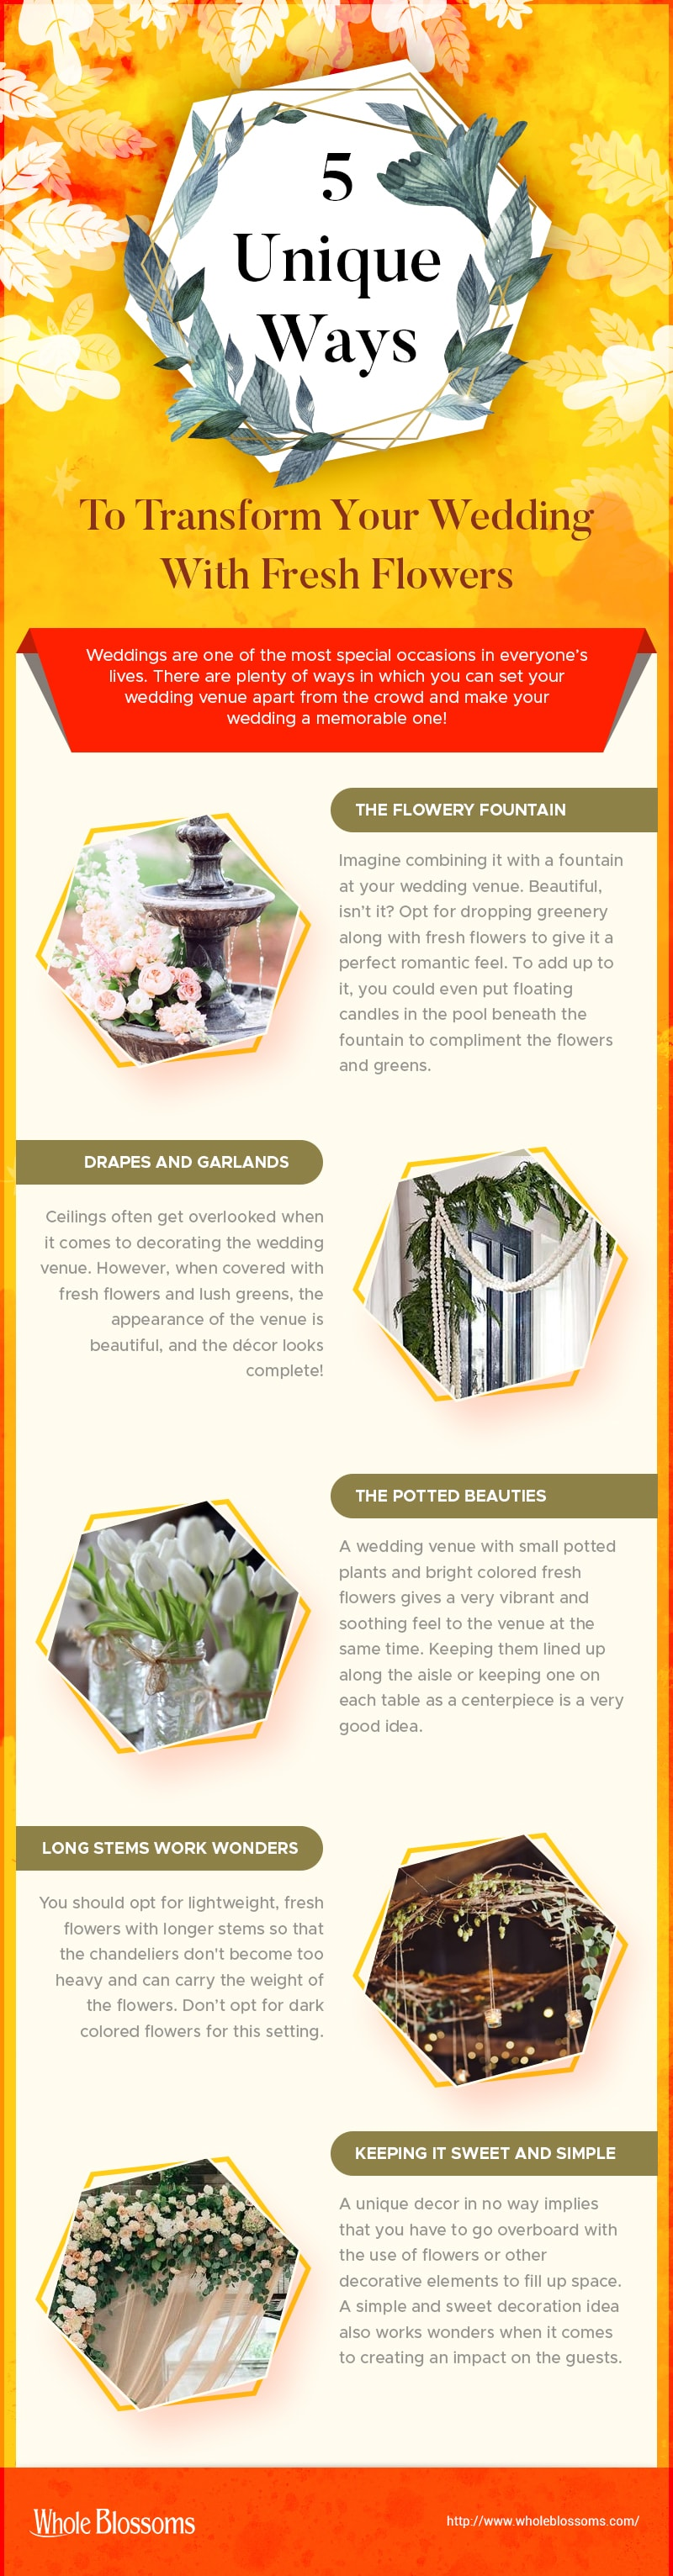 5 Unique Ways to Transform Your Wedding with Fresh Flowers